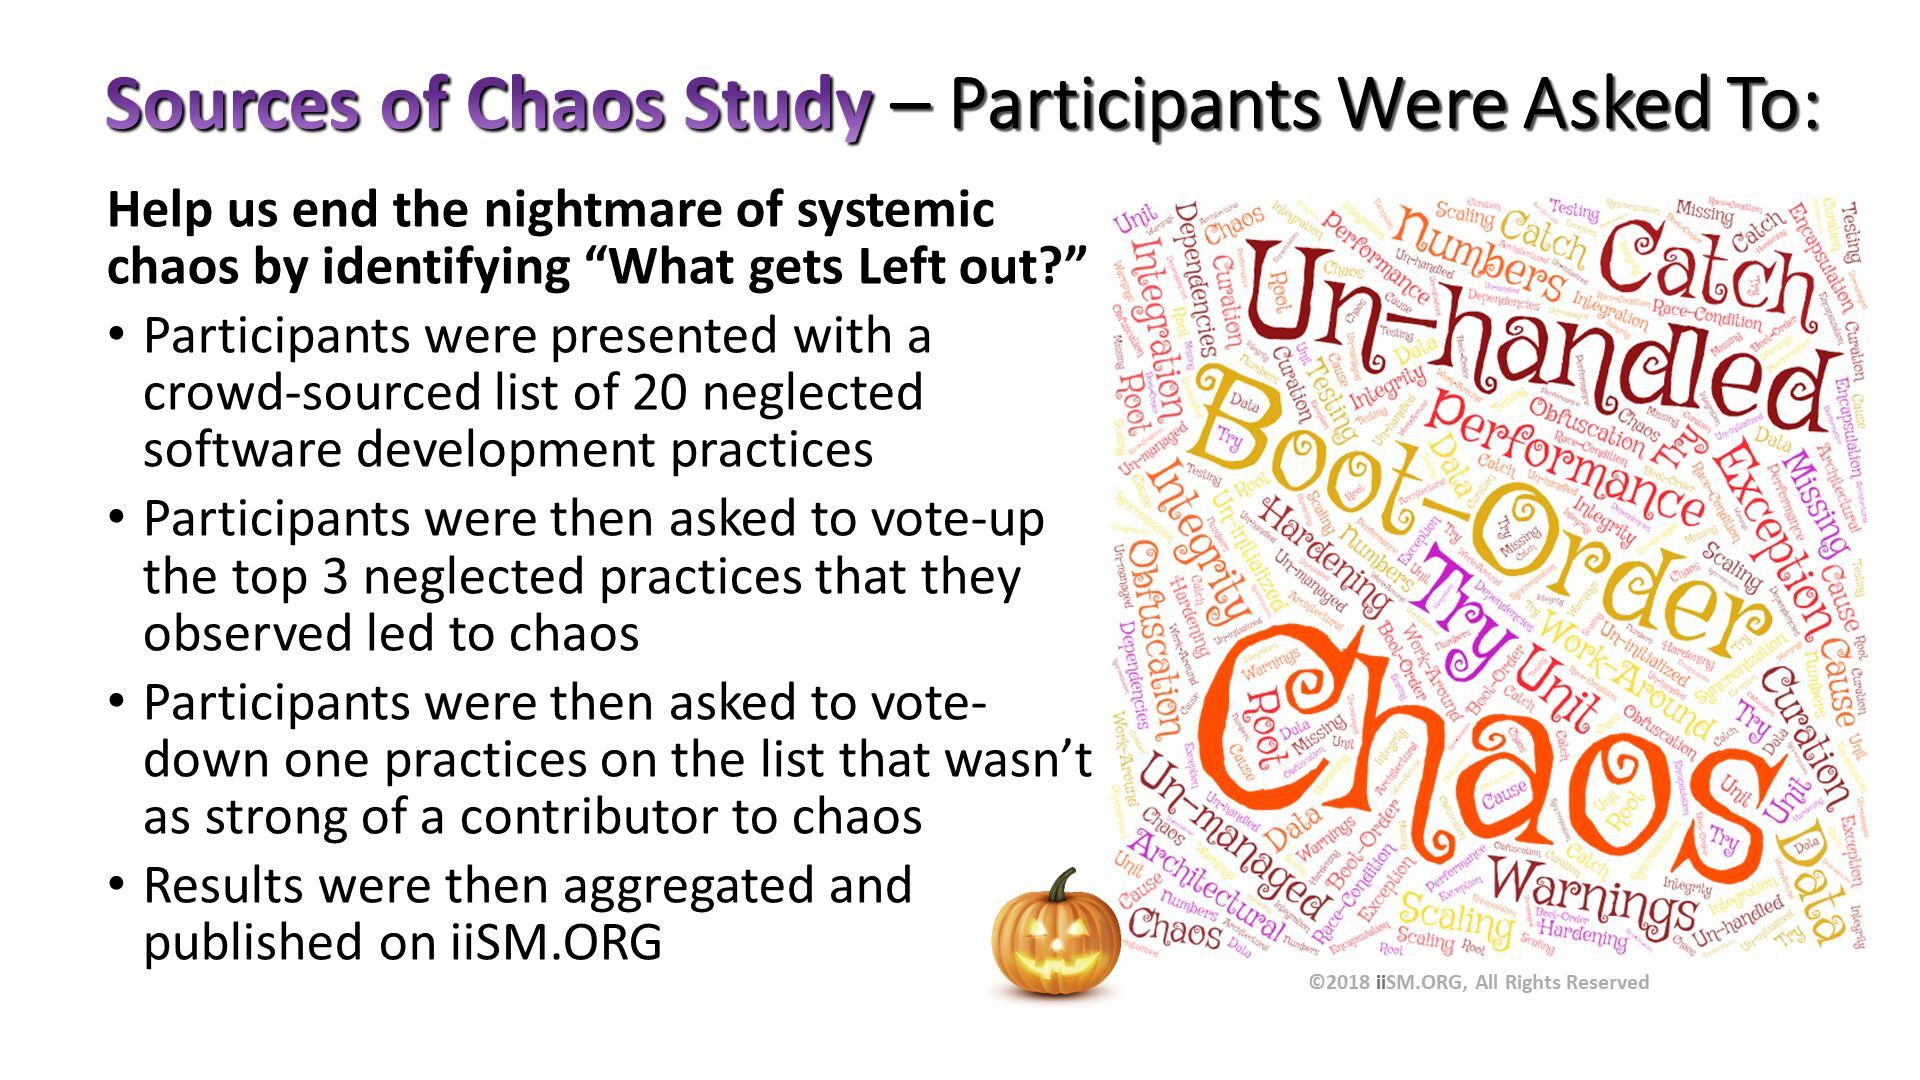 "Sources of Chaos Study – Participants Were Asked To:. Help us end the nightmare of systemic chaos by identifying ""What gets Left out?"" Participants were presented with a crowd-sourced list of 20 neglected software development practices Participants were then asked to vote-up the top 3 neglected practices that they observed led to chaos Participants were then asked to vote-down one practices on the list that wasn't as strong of a contributor to chaos Results were then aggregated and published on iiSM.ORG. ©2018 iiSM.ORG, All Rights Reserved."